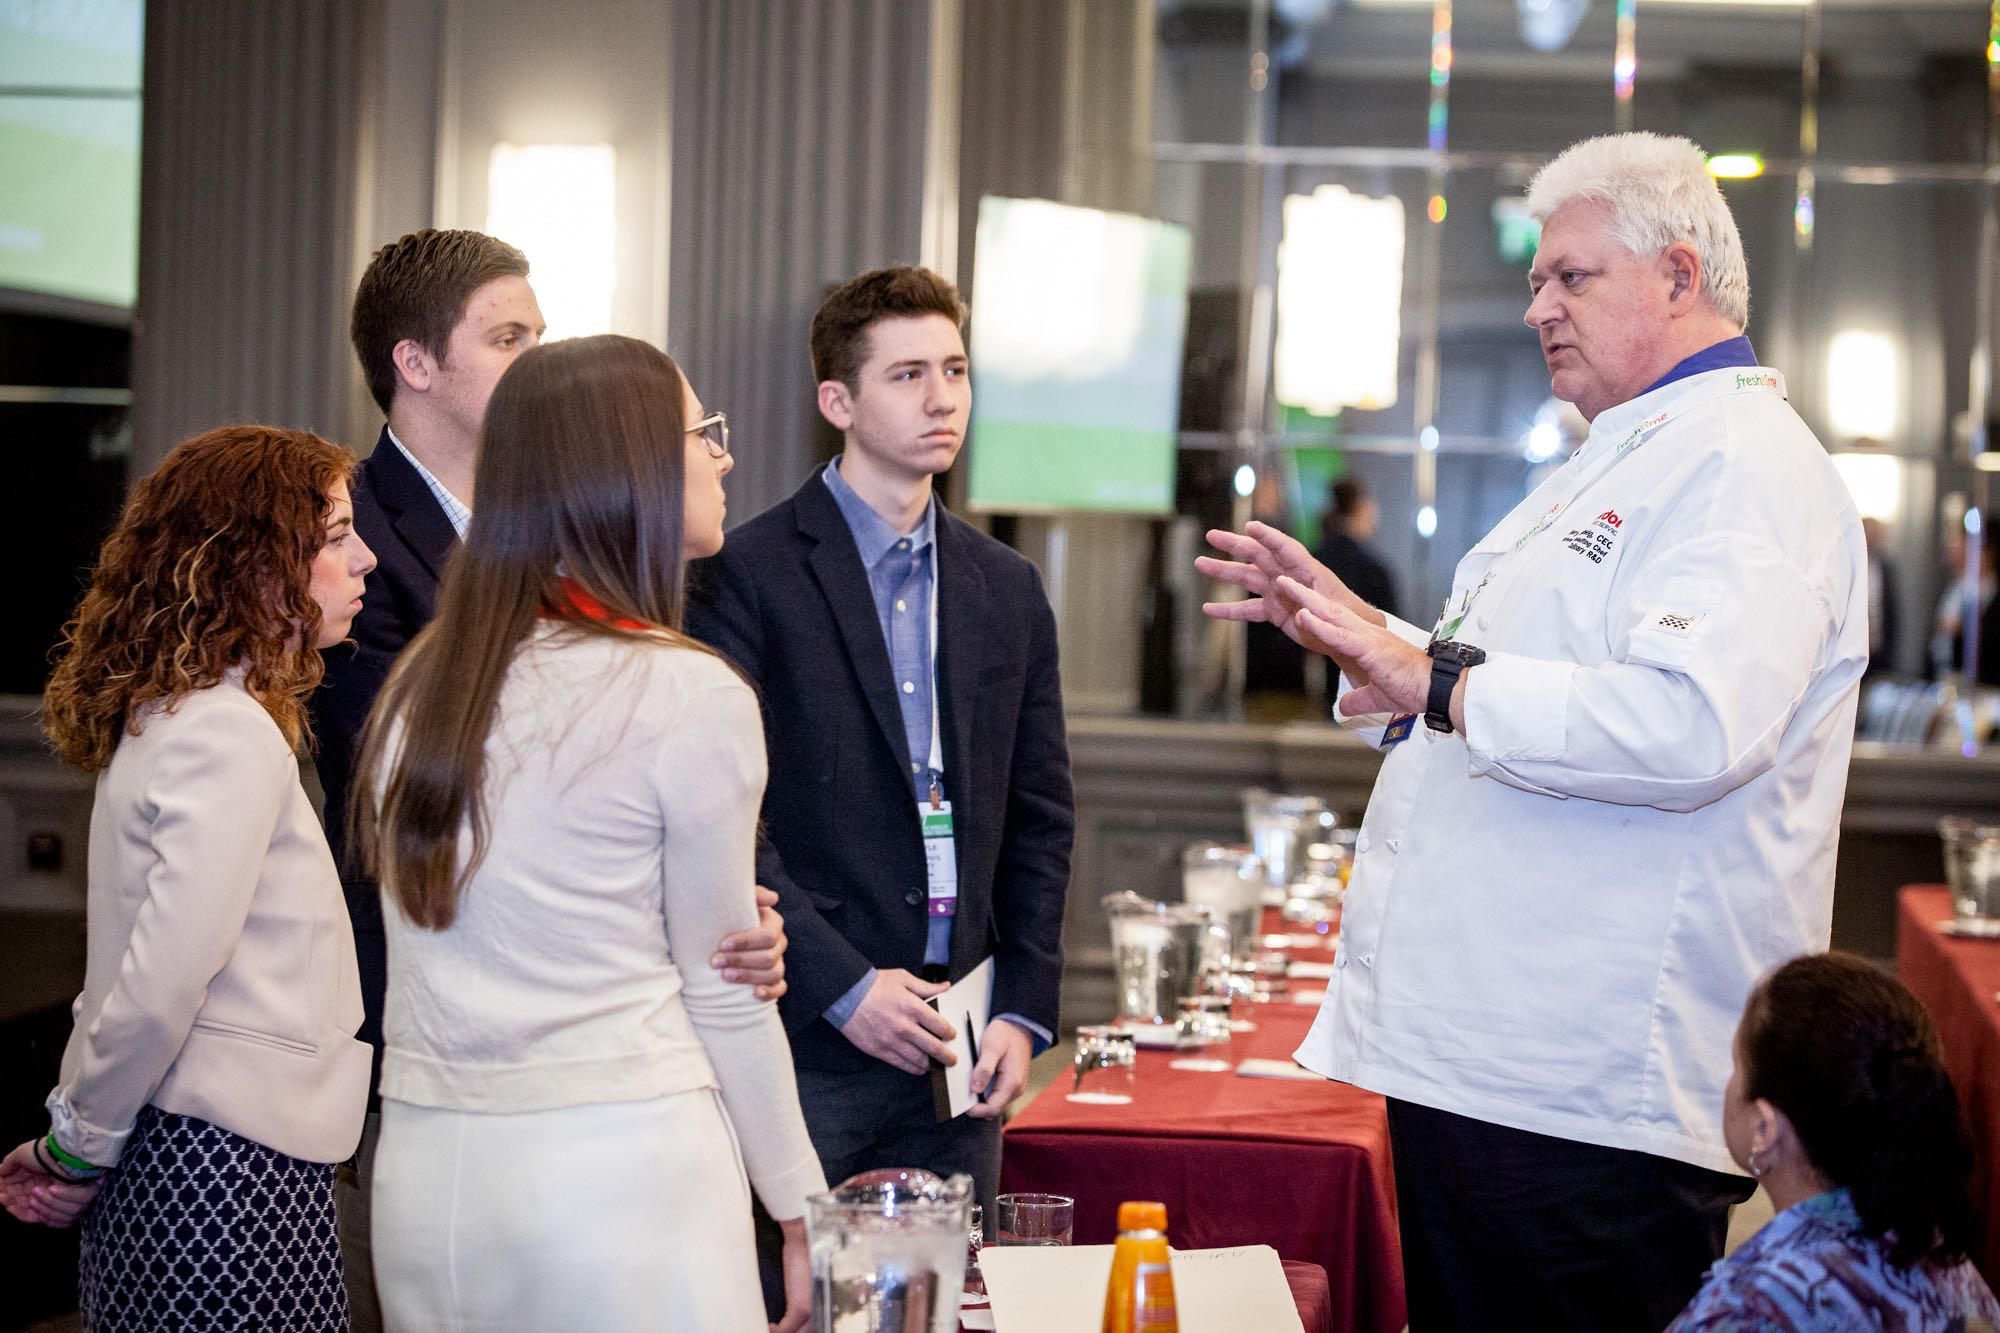 Gerry Ludwig of Gordon Food Service, shares his wisdom with delegates after a great presentation at The London Produce Show.